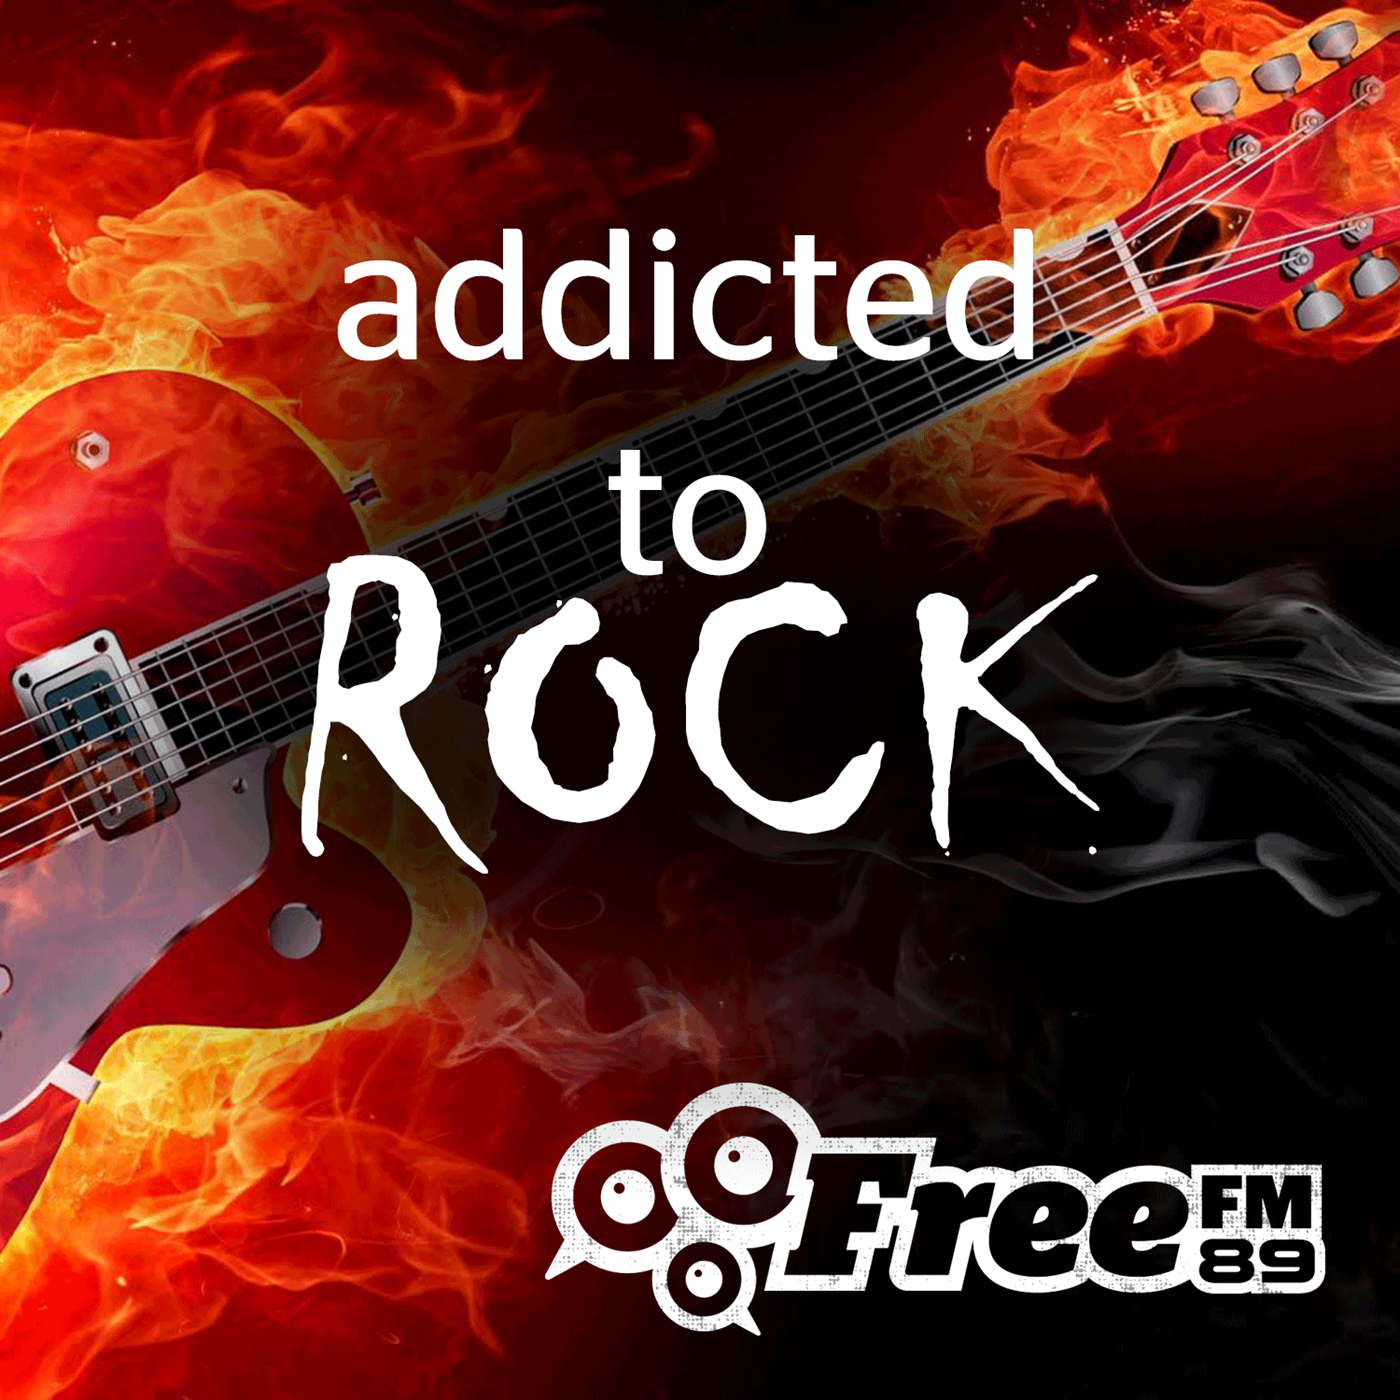 Addicted To Rock-20-10-2018